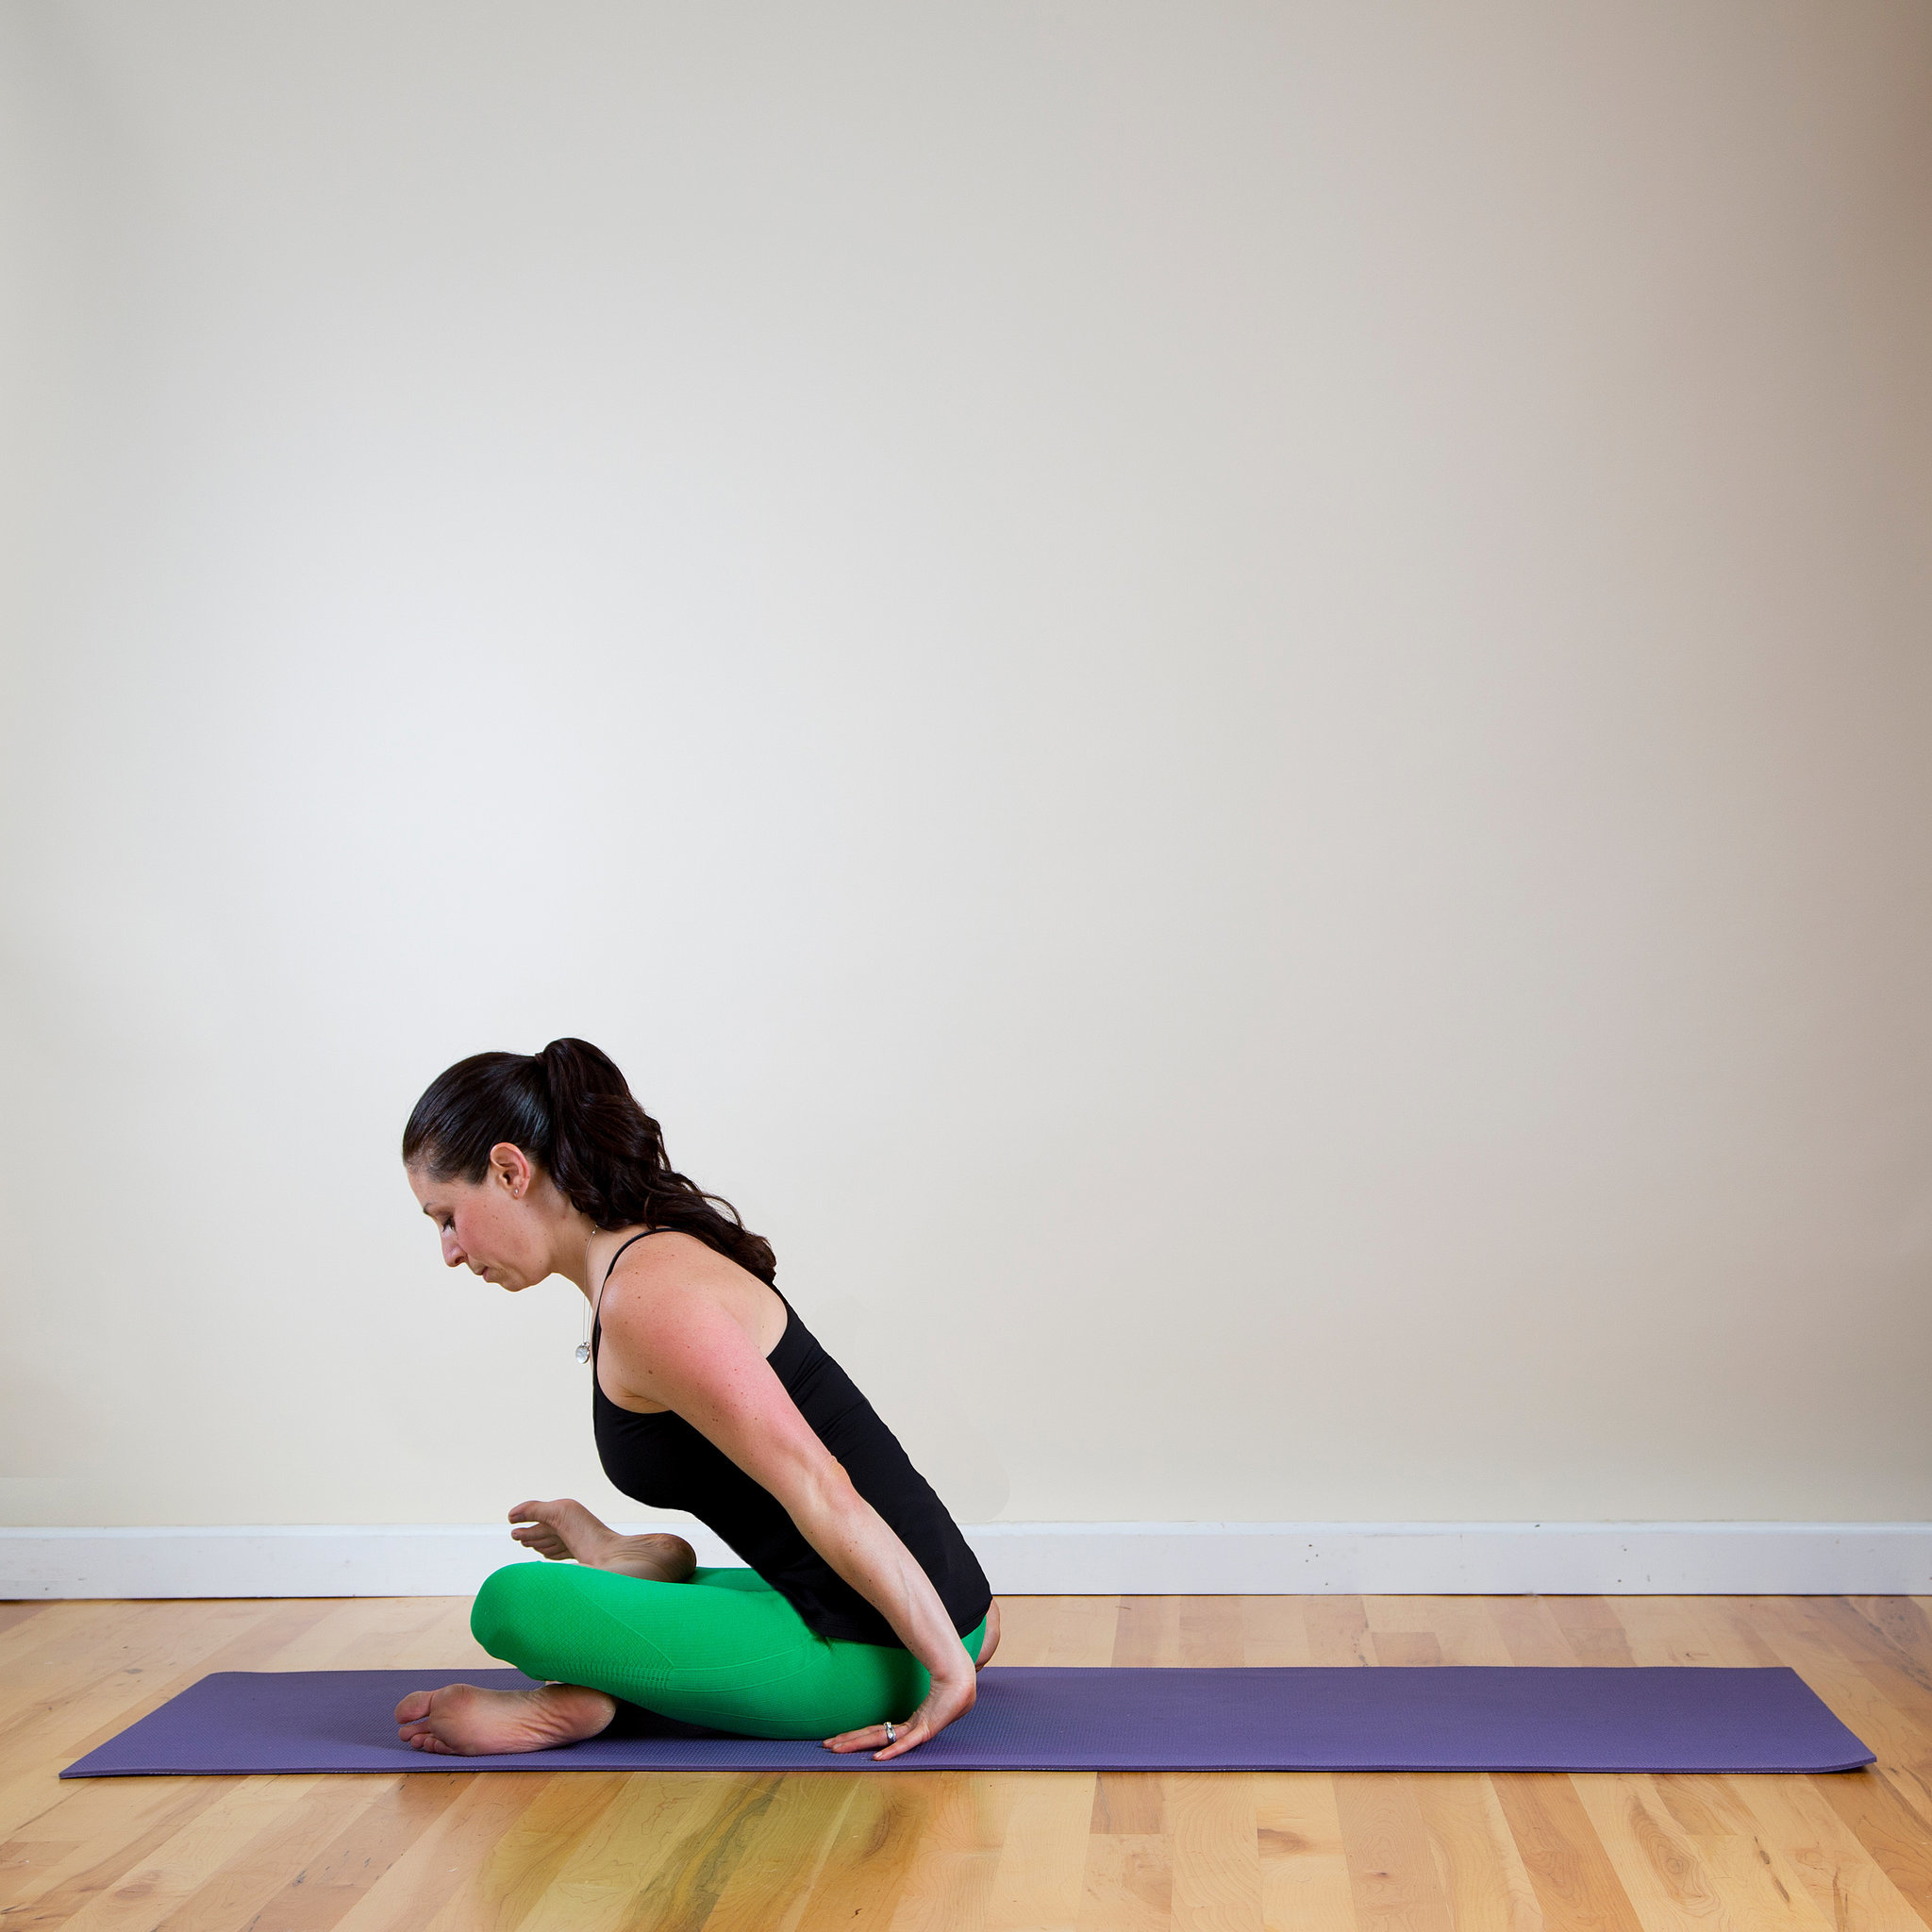 To beautiful, tightened hips - a couple of steps